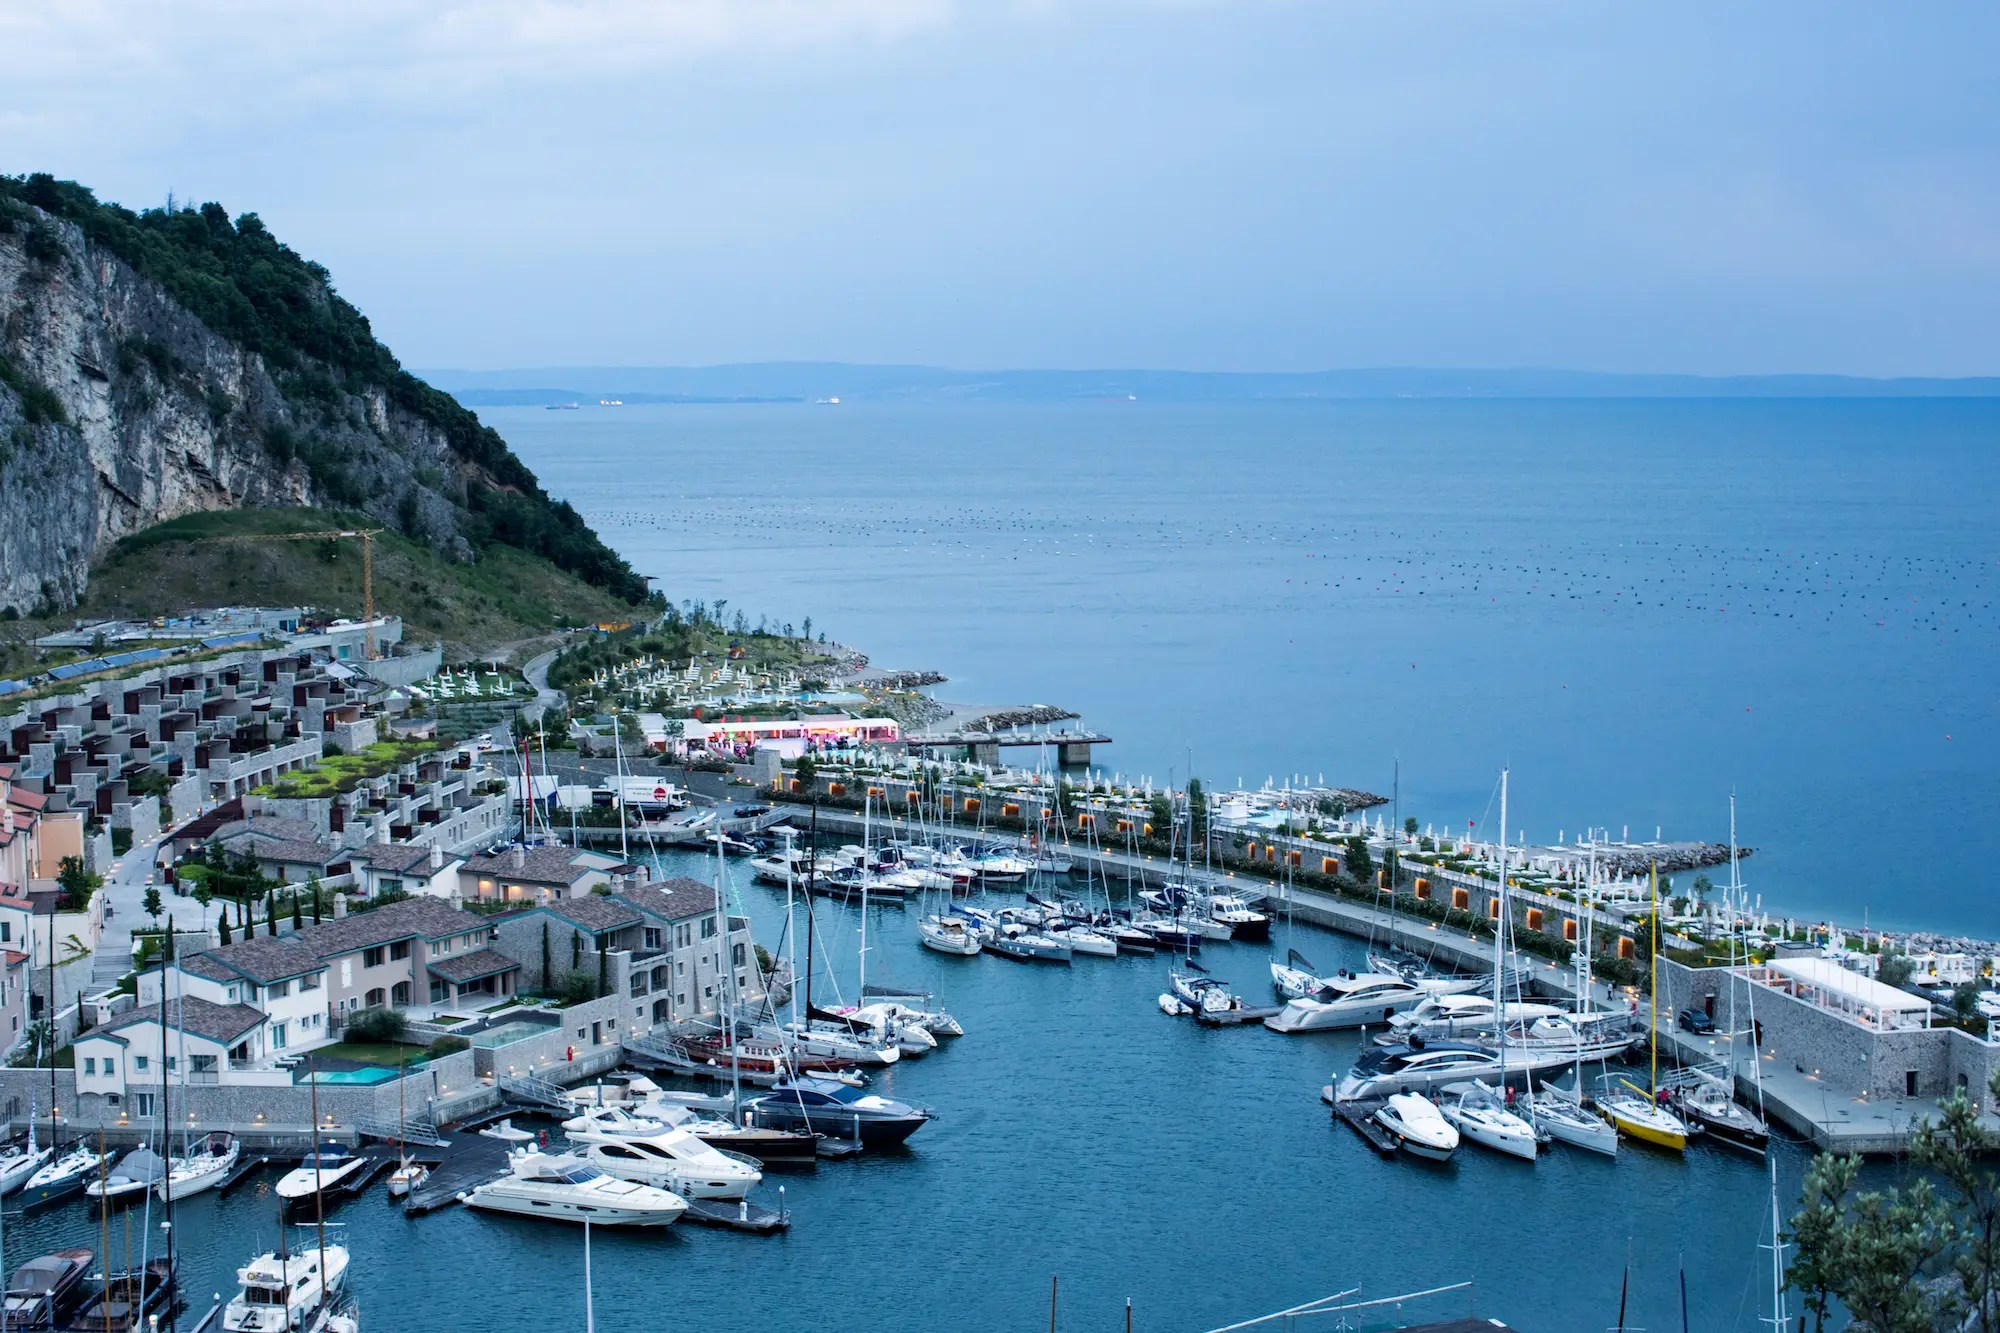 The three-day event took place in stunning Portopiccolo, Italy, 20 kilometres from Trieste.